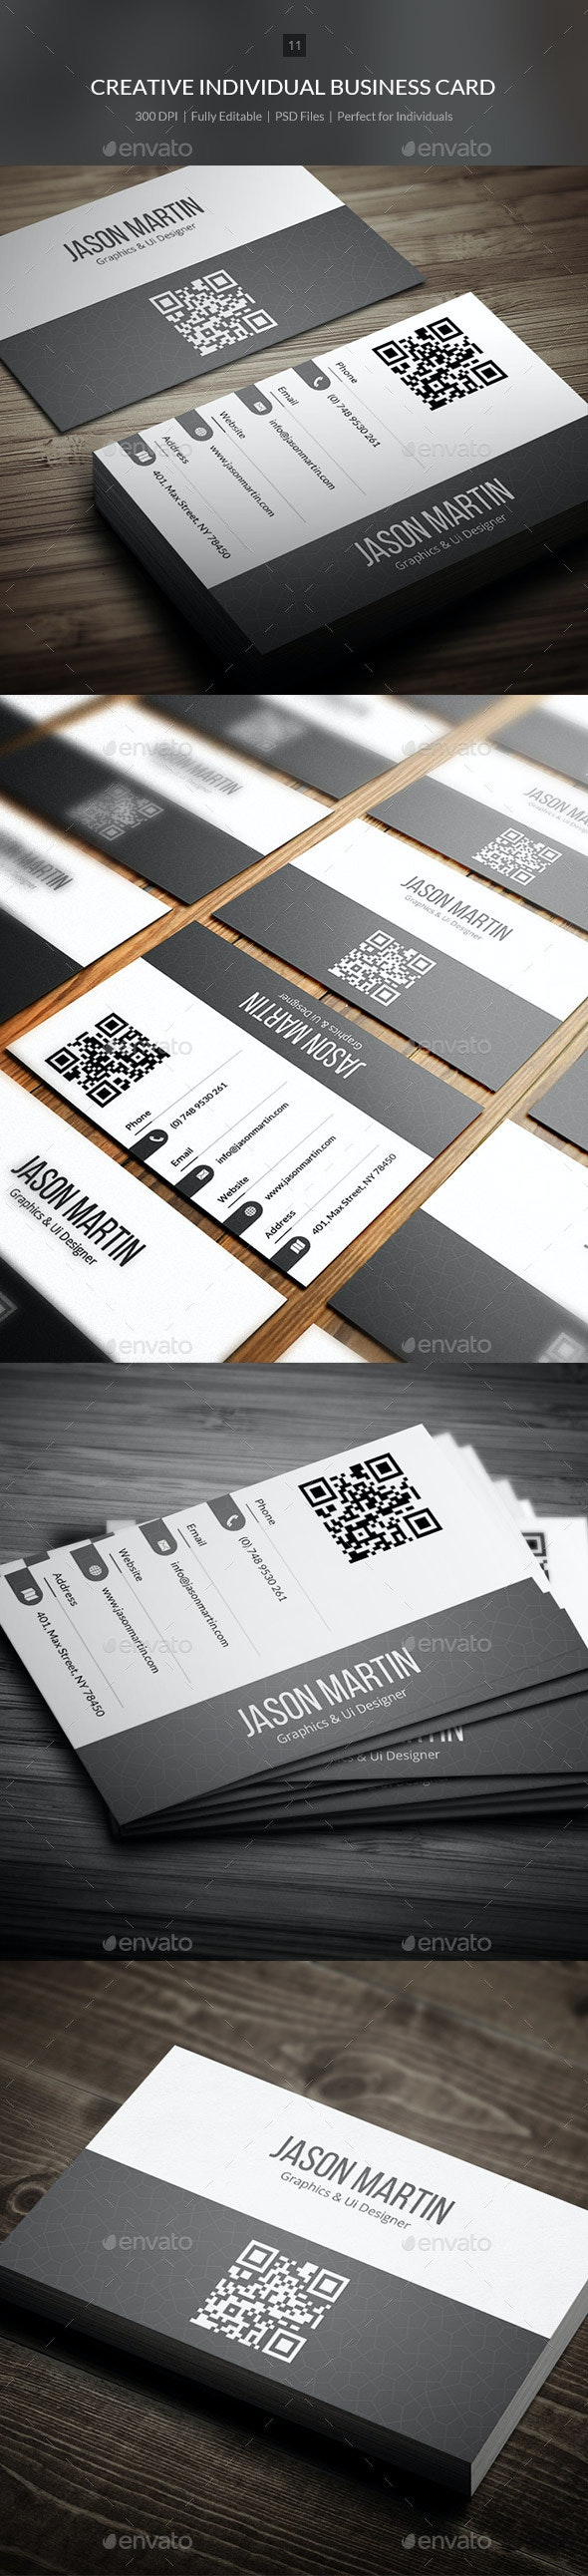 Creative Individual Busienss Card - 11 - Creative Business Cards